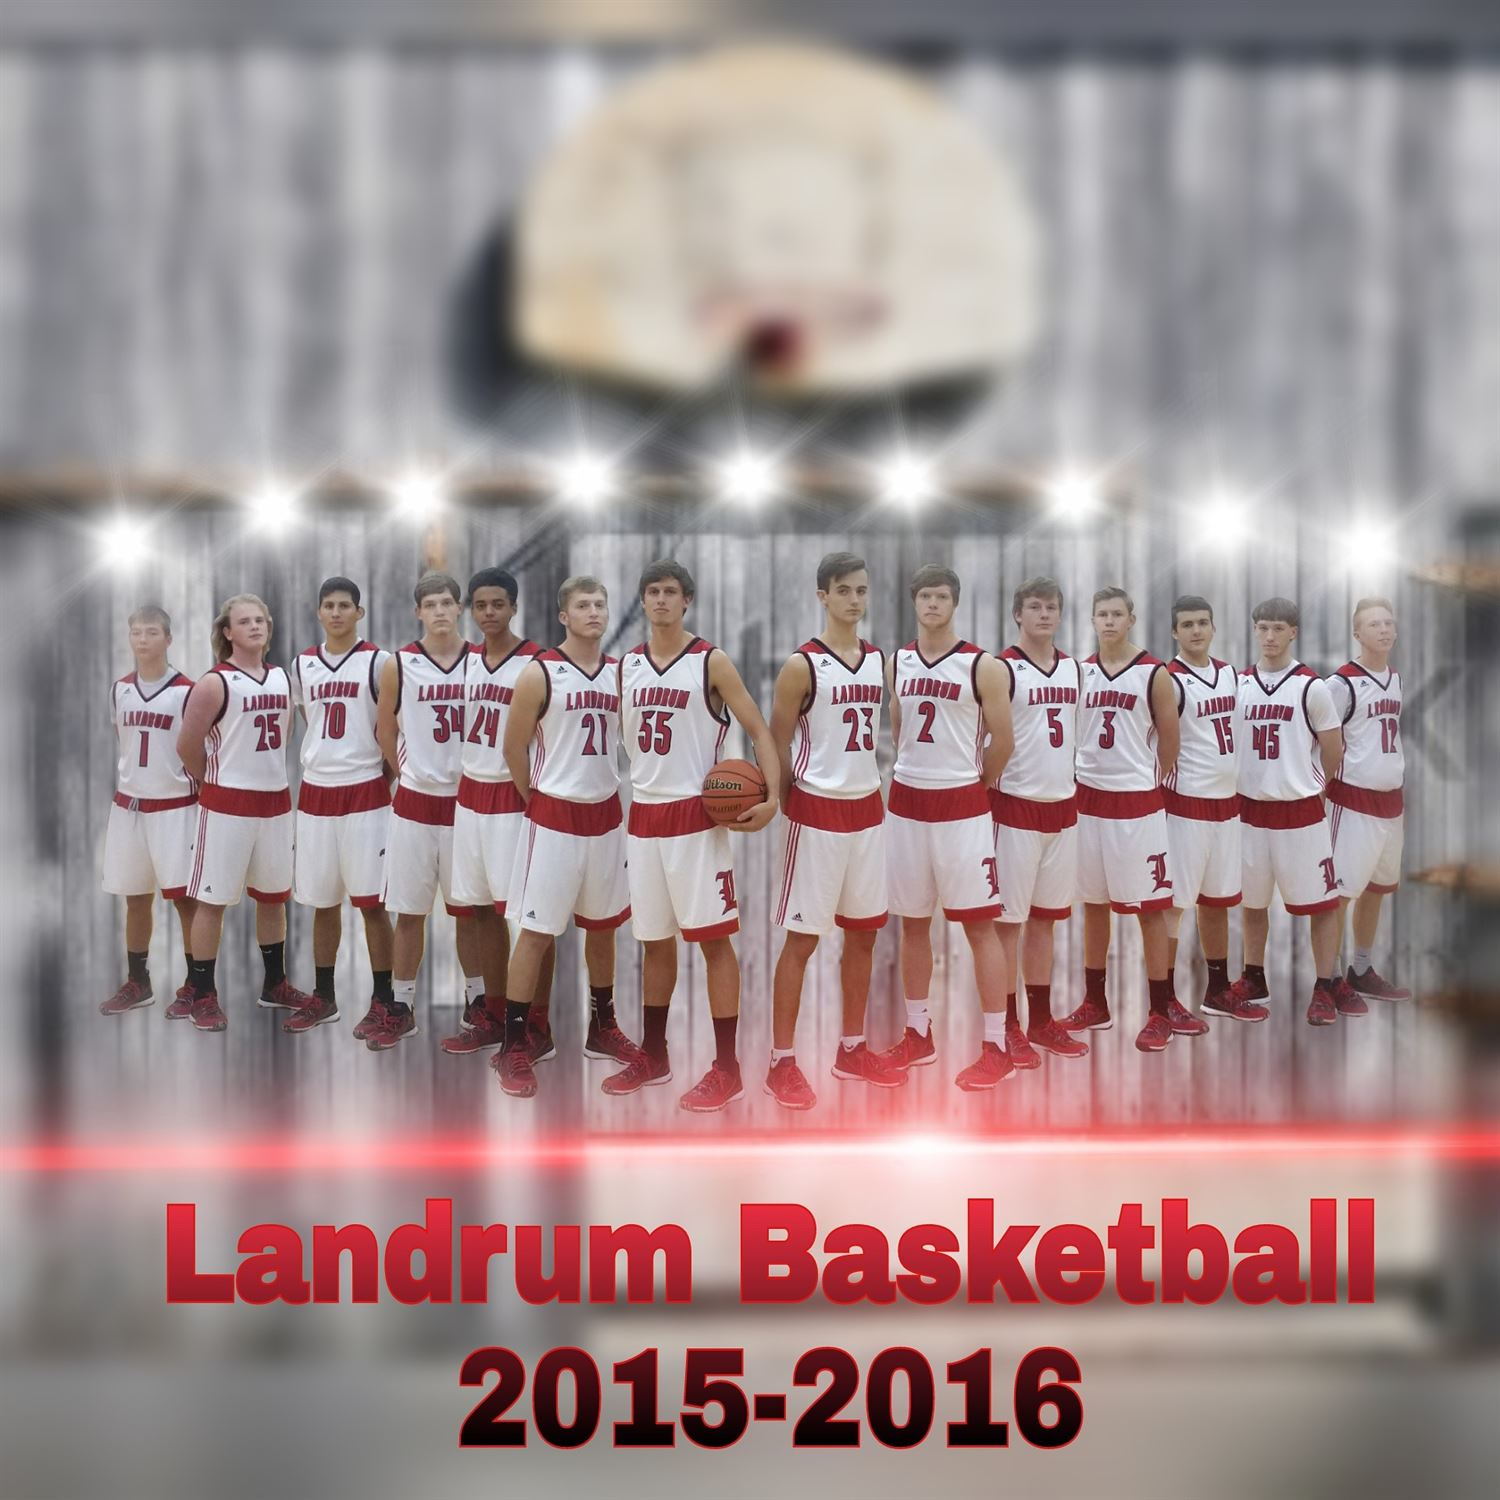 Landrum High School - Boys' Varsity Basketball - Classic